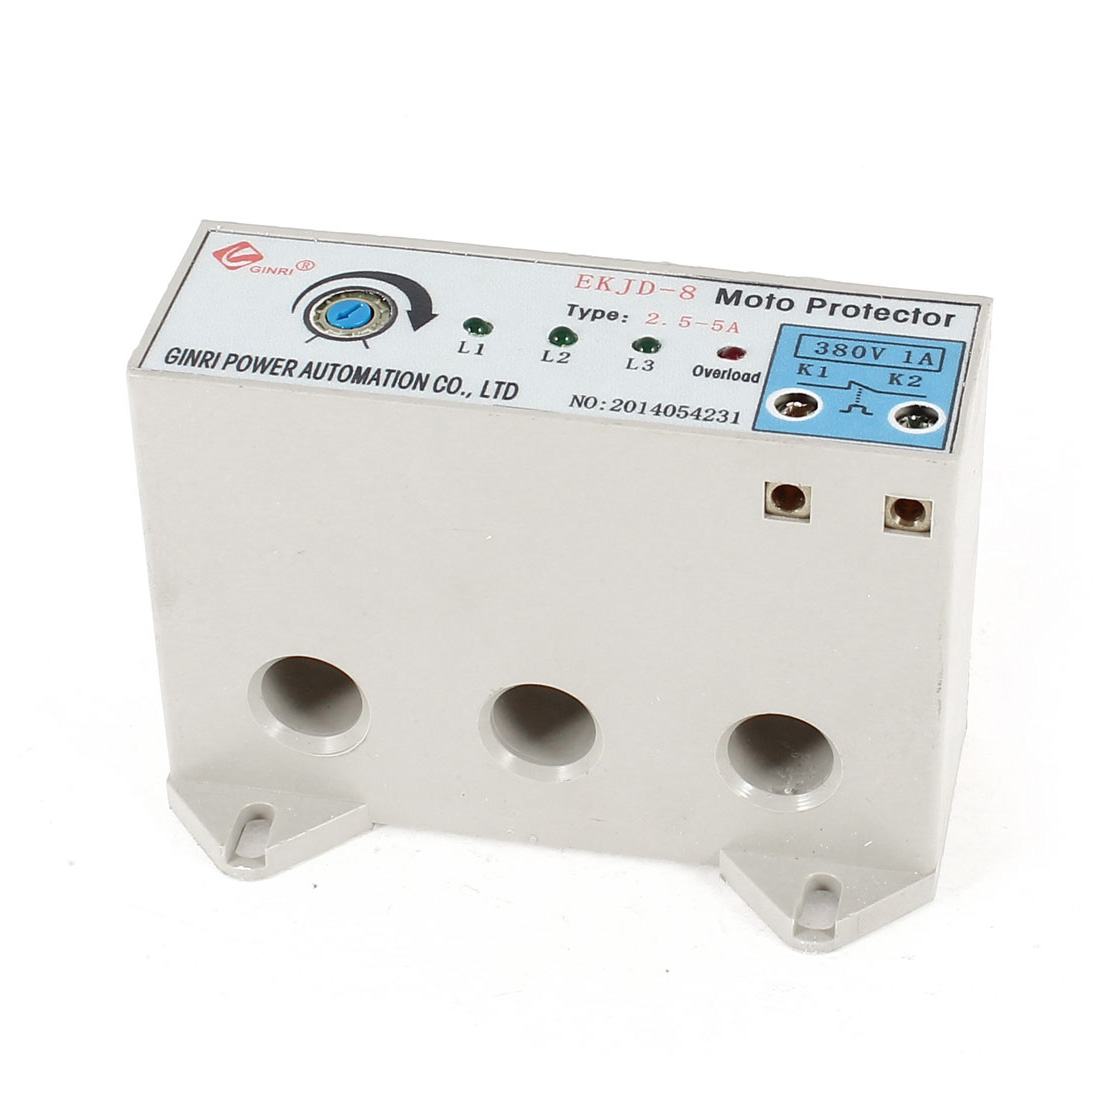 EKJD-8/2.5-5A 3 Phase 2.5-5 Ampere Adjustable Current Breaker Motor Circuit Protector Non Power